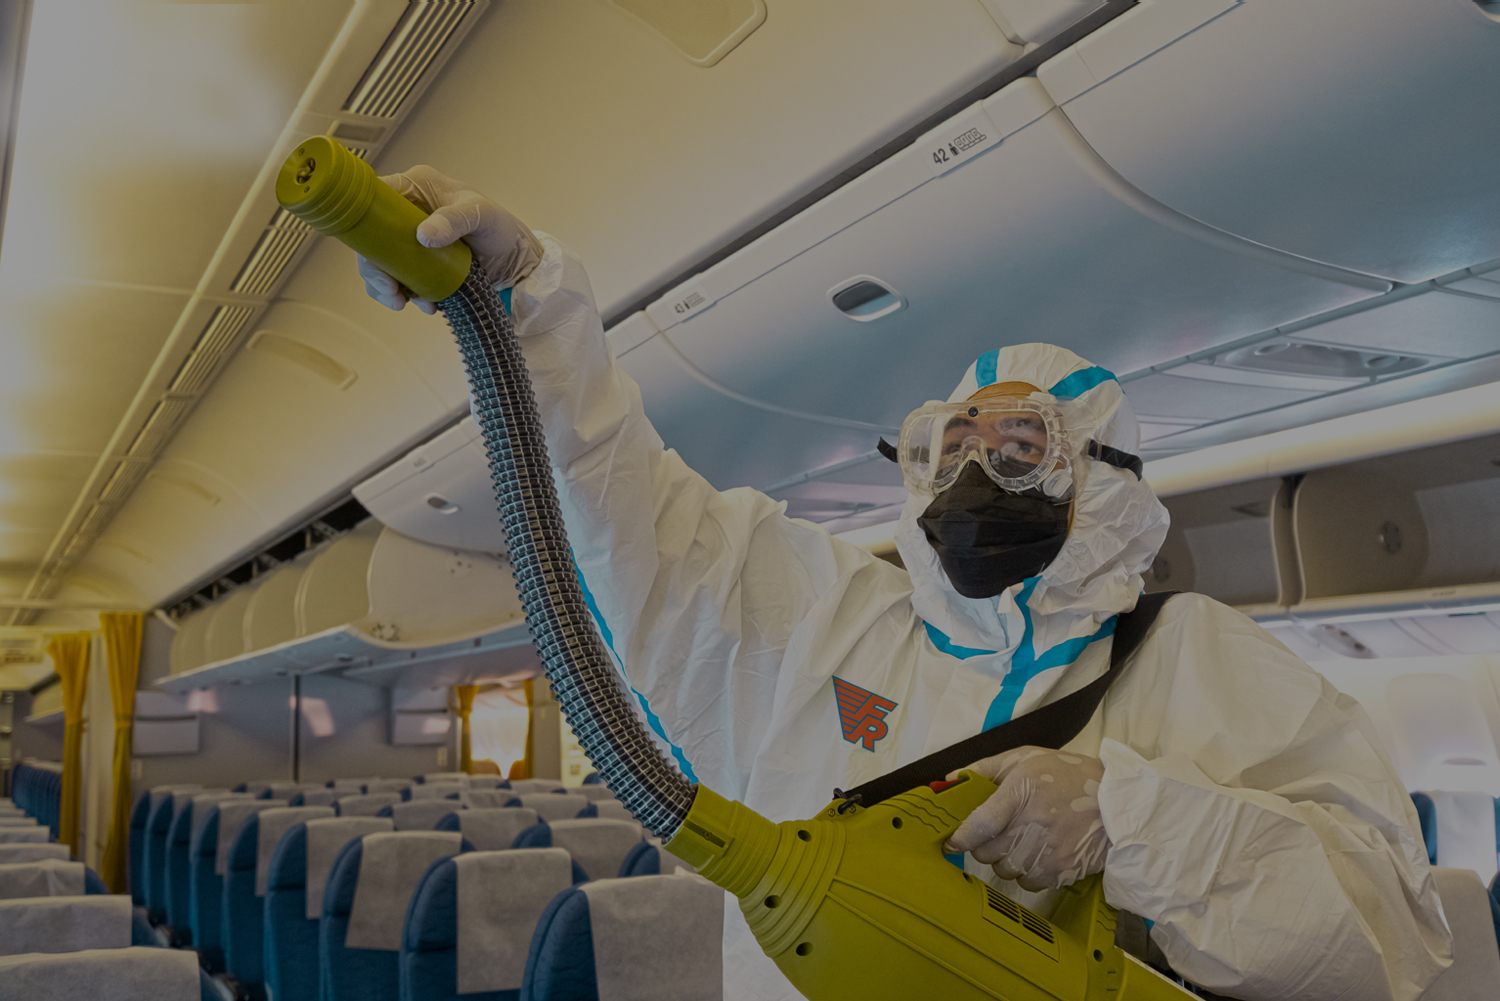 Faragon Restoration Ltd. Transportation Clients, Airplane Biohazard Cleaning, COVID-19 Mitigation